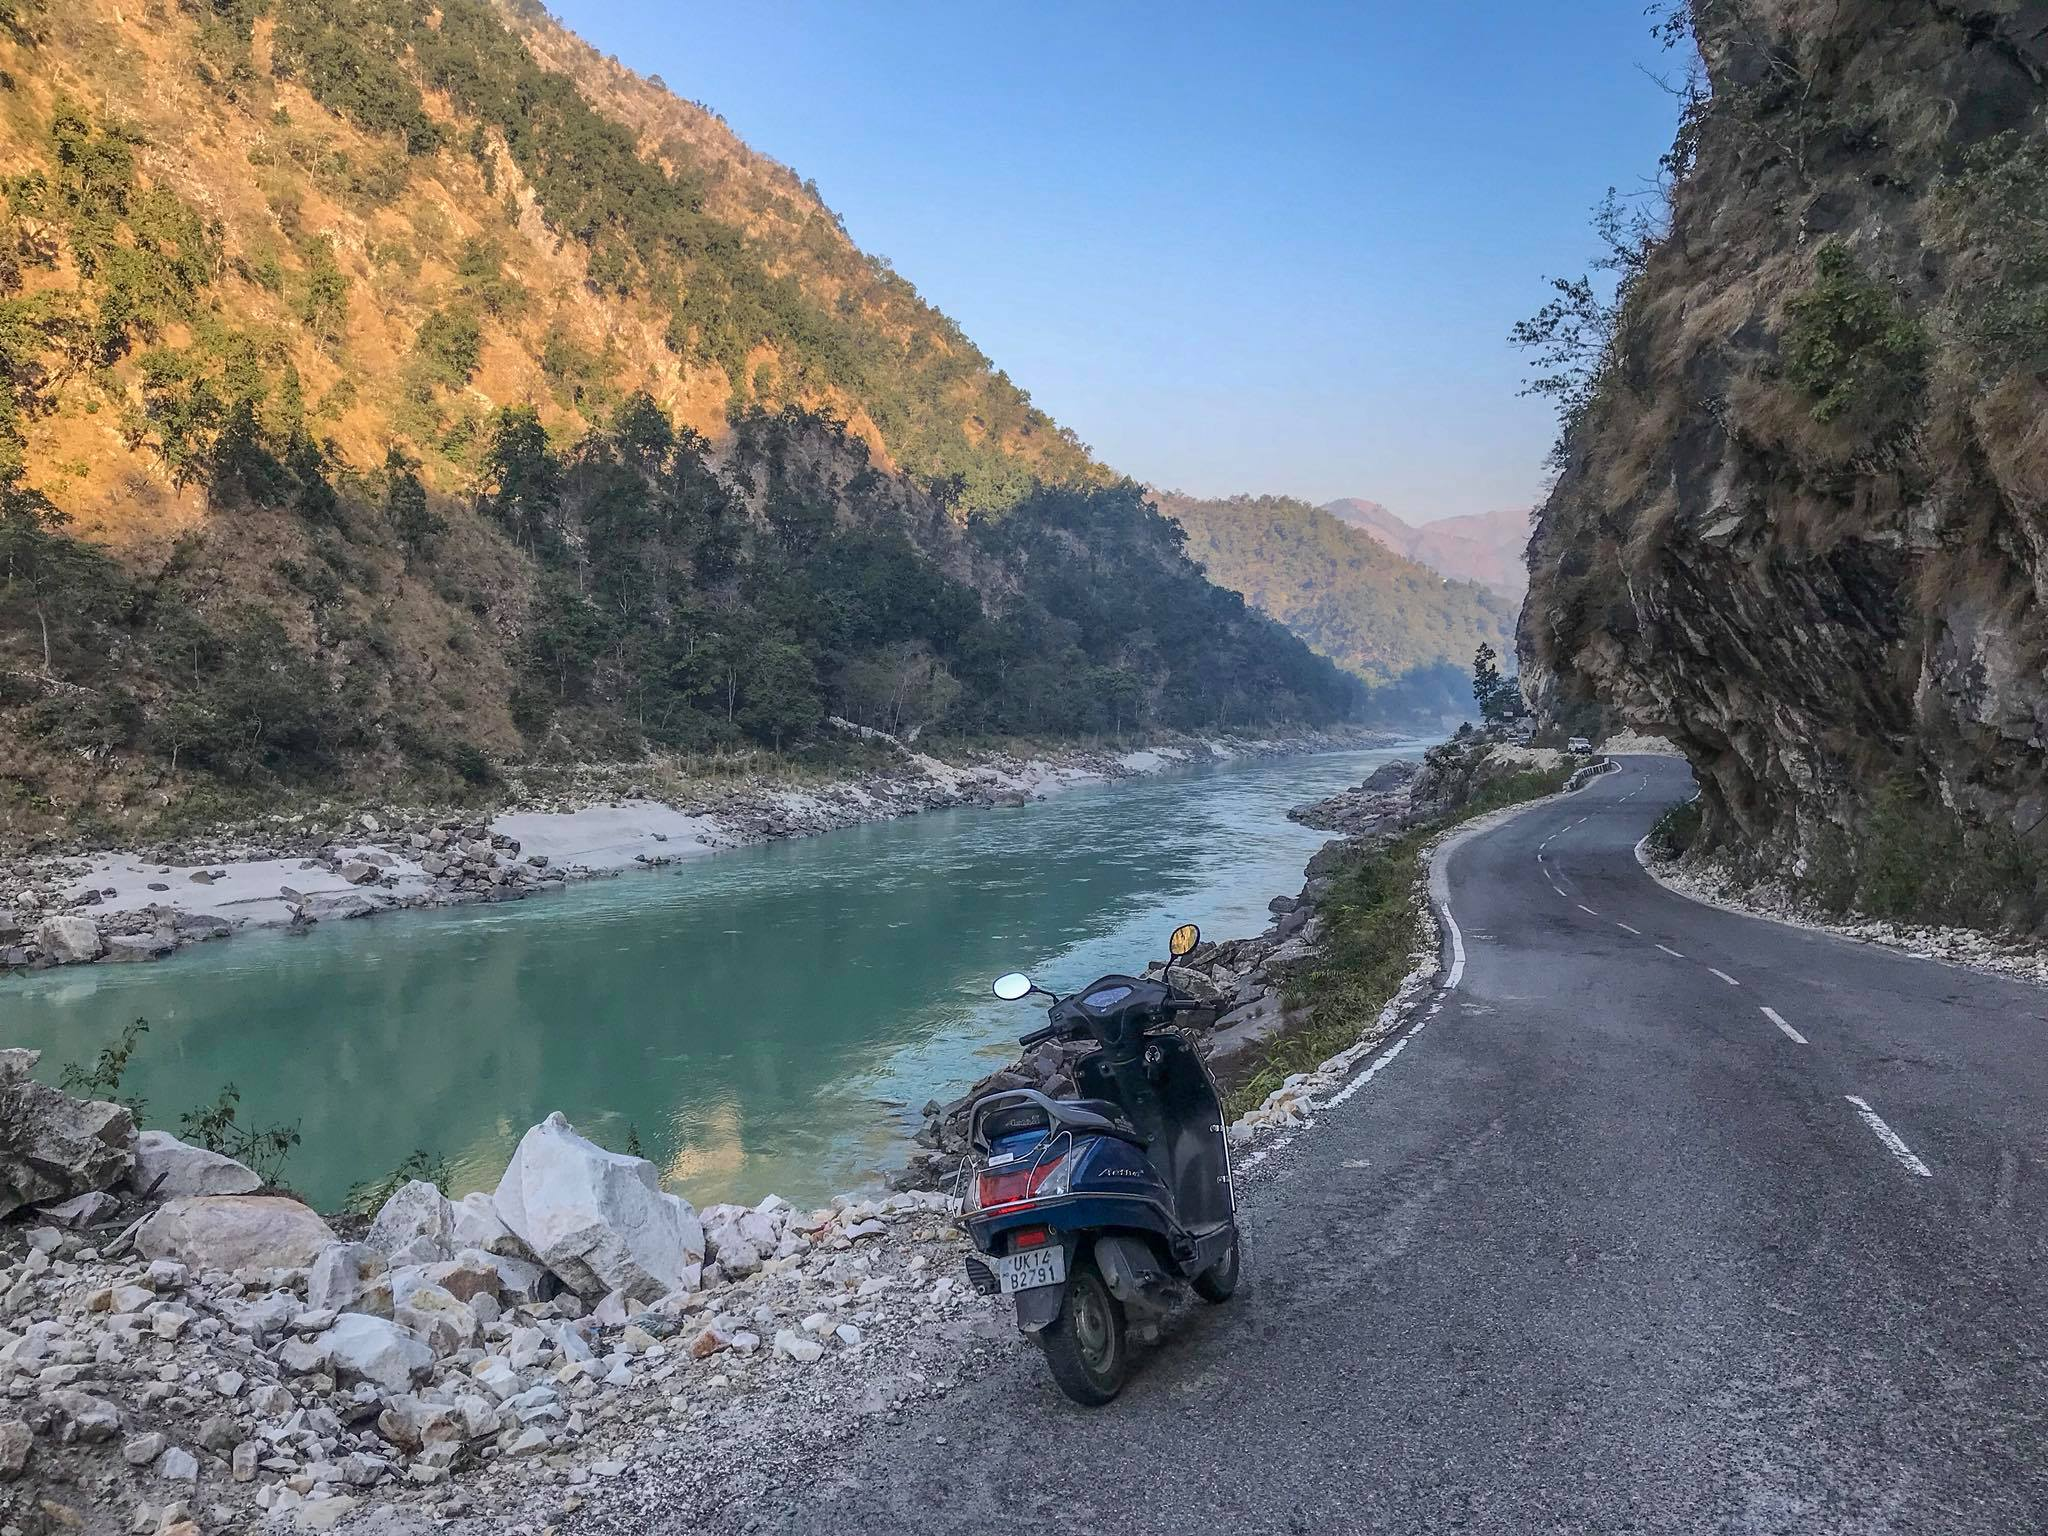 Rent A Scooter In Rishikesh – Top 5 Places You Should Visit